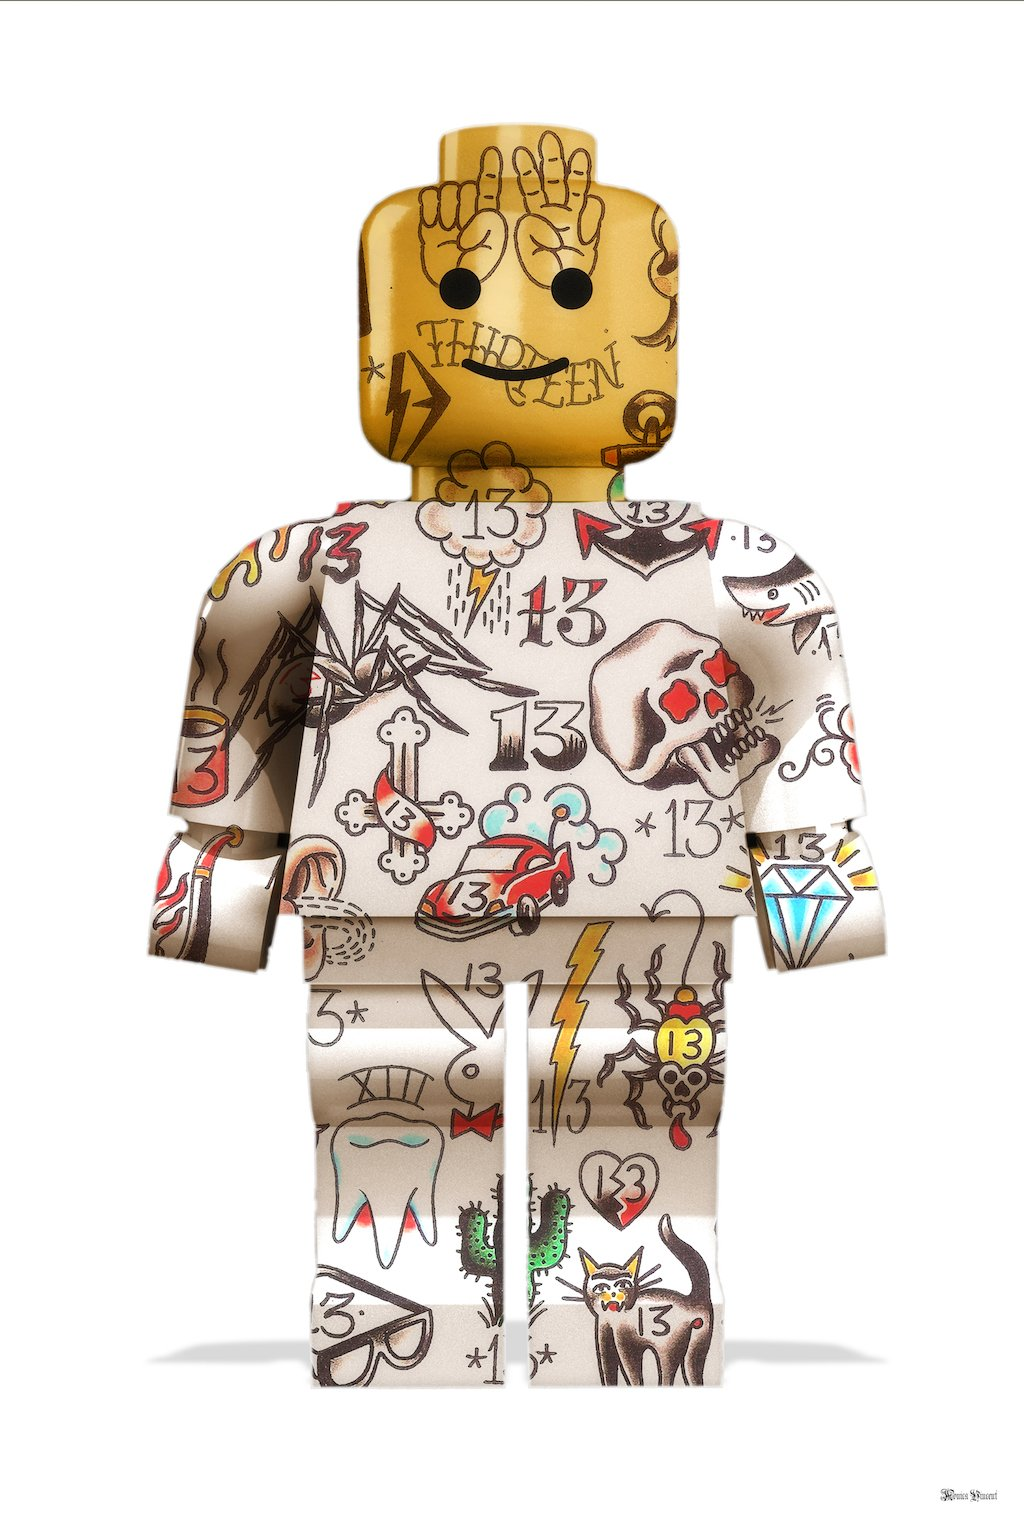 Graffiti Lego Man (White Background) - Large - Framed by Monica Vincent